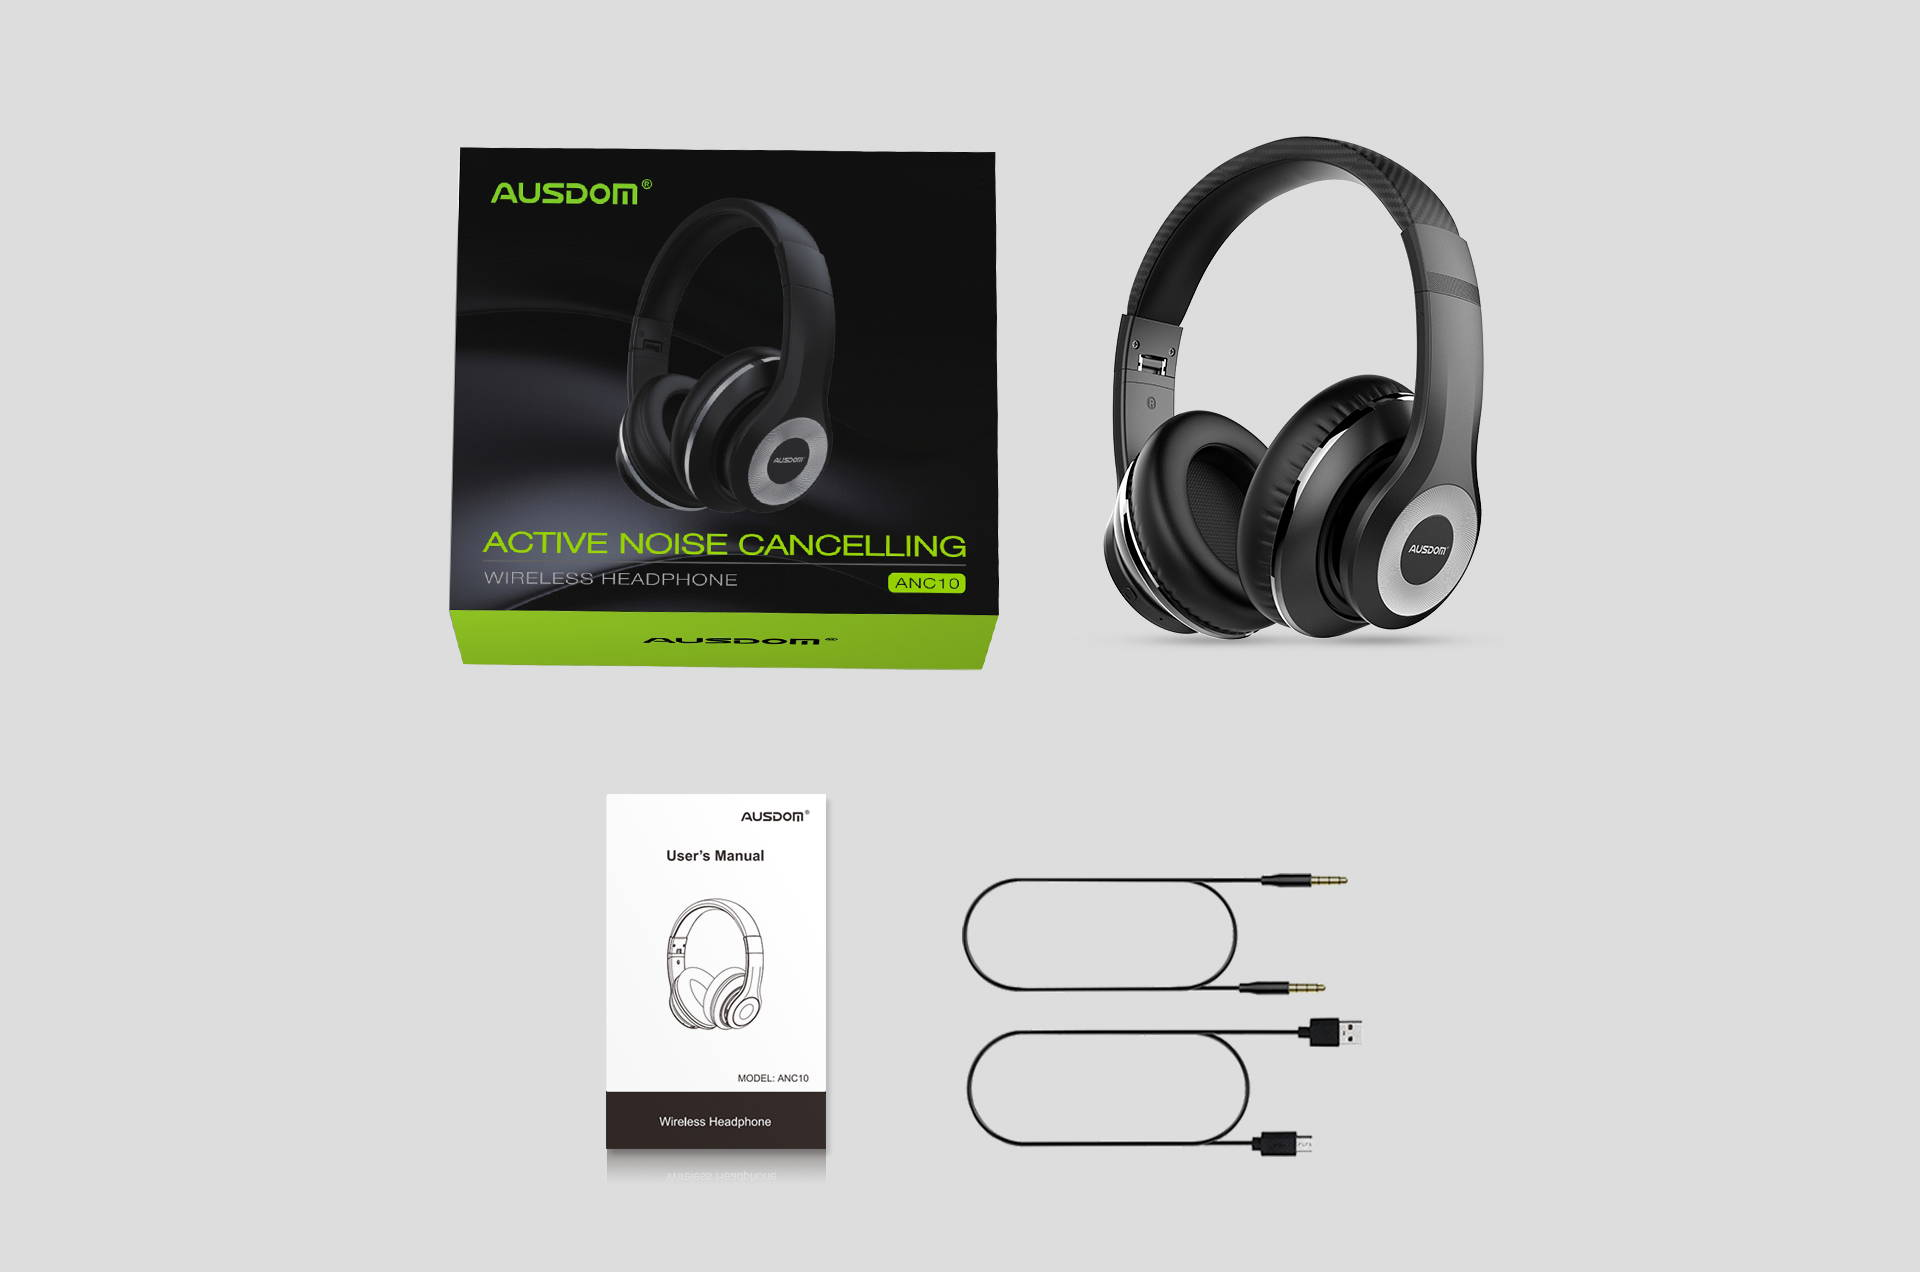 Ausdom ANC10 Active Noise Cancellation Bluetooth V5.0 Headphones